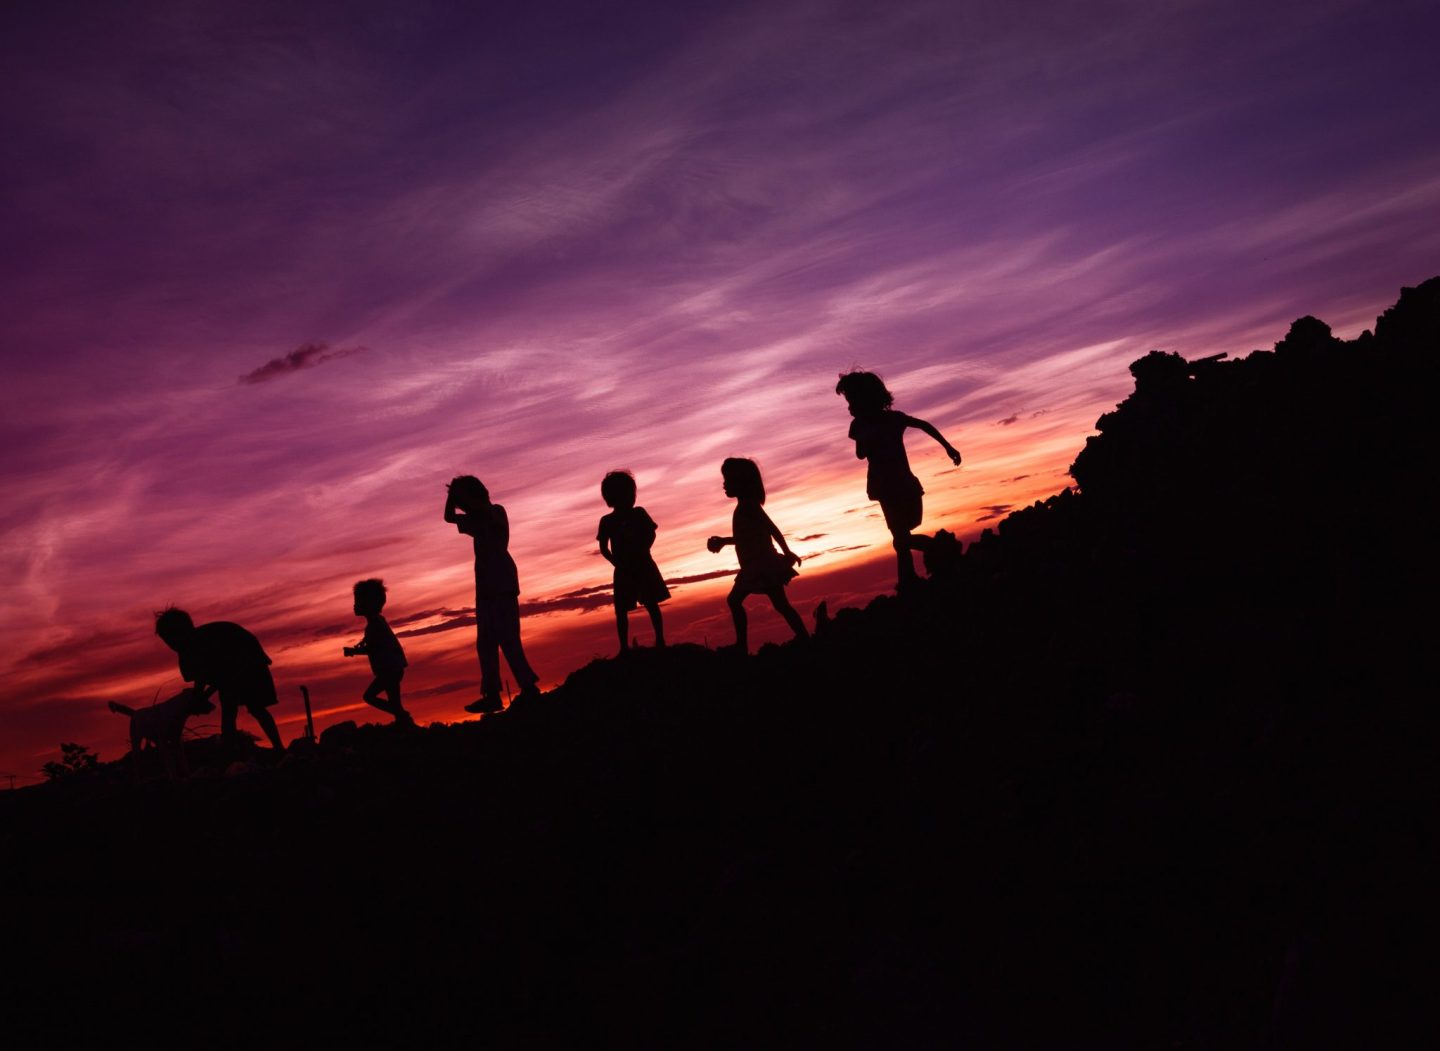 Silhouette of kids playing with their dog during sunset, running down a hill.